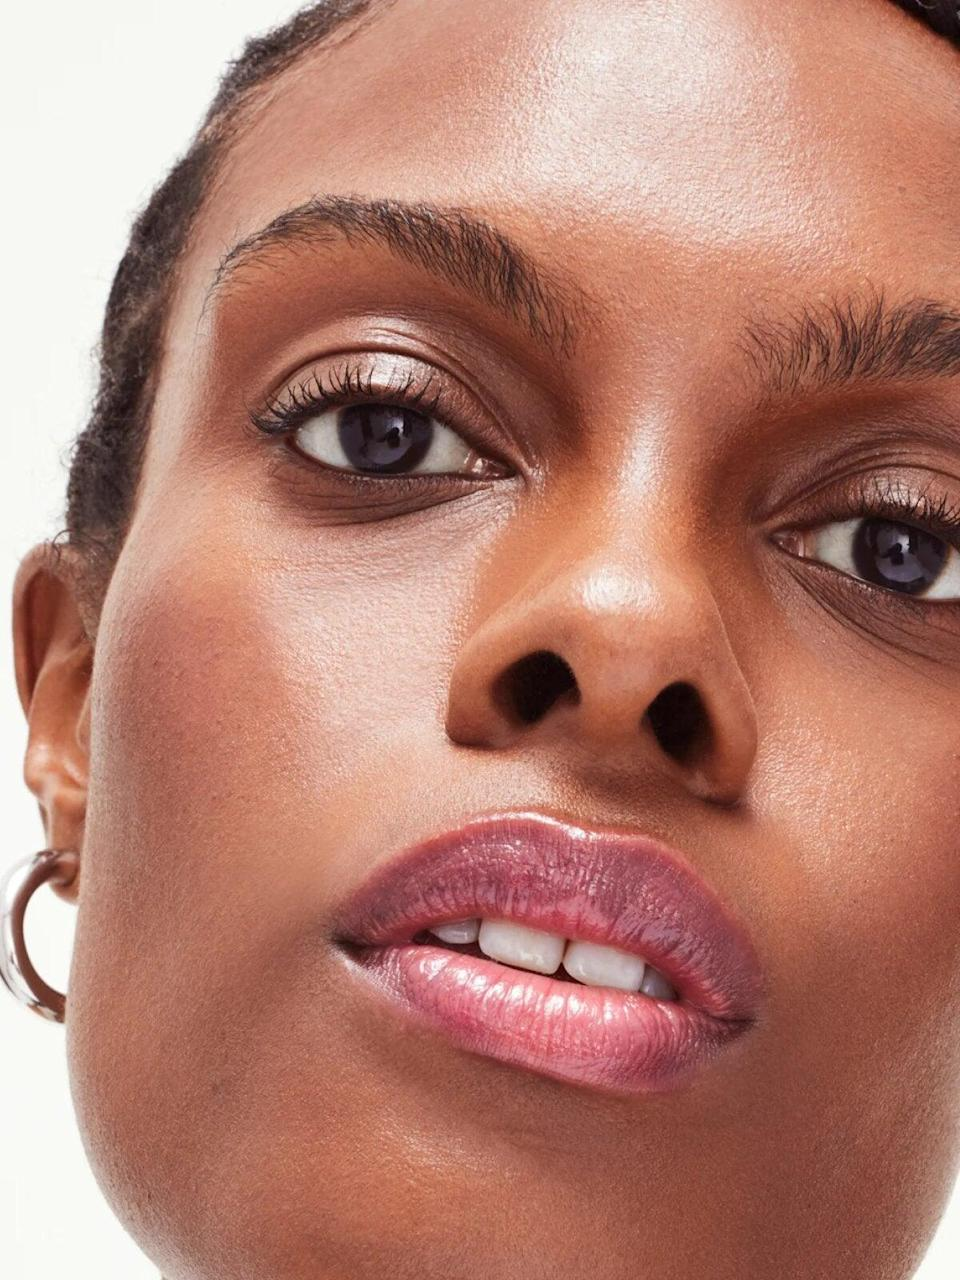 """<h2>Glossier Ultralip In Portait</h2><br>When <a href=""""https://www.refinery29.com/en-us/2021/05/10484446/glossier-ultralip-review"""" rel=""""nofollow noopener"""" target=""""_blank"""" data-ylk=""""slk:Glossier launched its Ultralip"""" class=""""link rapid-noclick-resp"""">Glossier launched its Ultralip</a> — a tinted lip balm meets lipgloss meets lipstick hybrid — readers carted it up as a new summer beauty favorite. The top-bought color was Portrait (pictured here), a hue our beauty writer described as """"the prettiest pink in existence"""" with balanced undertones that are perfect for everyday wear.<br><br><em>Shop <strong><a href=""""http://glossier.79ic8e.net/YgV91j"""" rel=""""nofollow noopener"""" target=""""_blank"""" data-ylk=""""slk:Glossier"""" class=""""link rapid-noclick-resp"""">Glossier</a></strong></em><br><br><strong>Glossier</strong> Ultralip, Portrait, $, available at <a href=""""https://glossier.79ic8e.net/YgV91j"""" rel=""""nofollow noopener"""" target=""""_blank"""" data-ylk=""""slk:Glossier"""" class=""""link rapid-noclick-resp"""">Glossier</a>"""